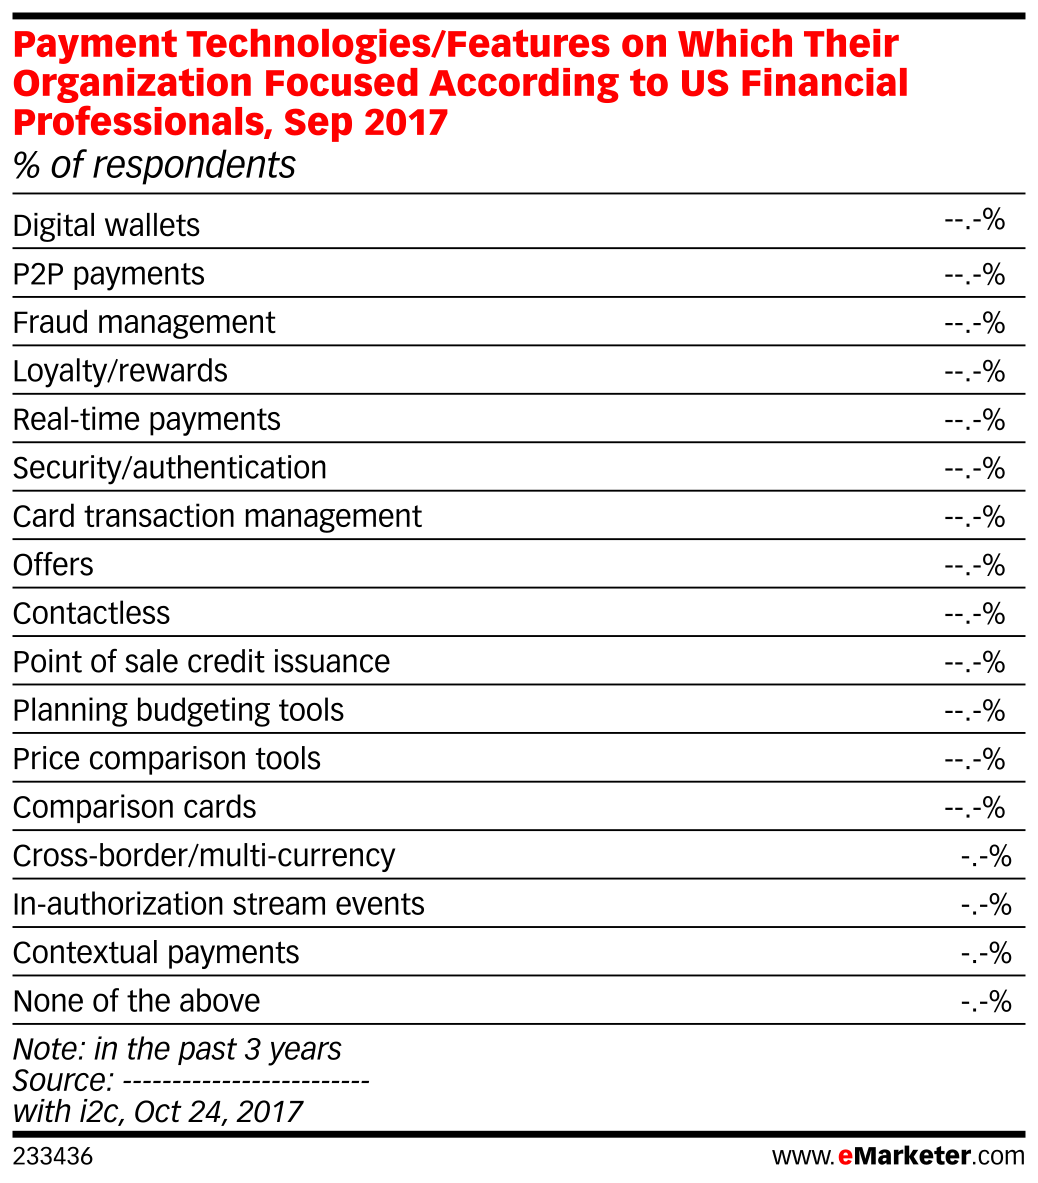 Payment Technologies/Features on Which Their Organization Focused According to US Financial Professionals, Sep 2017 (% of respondents)